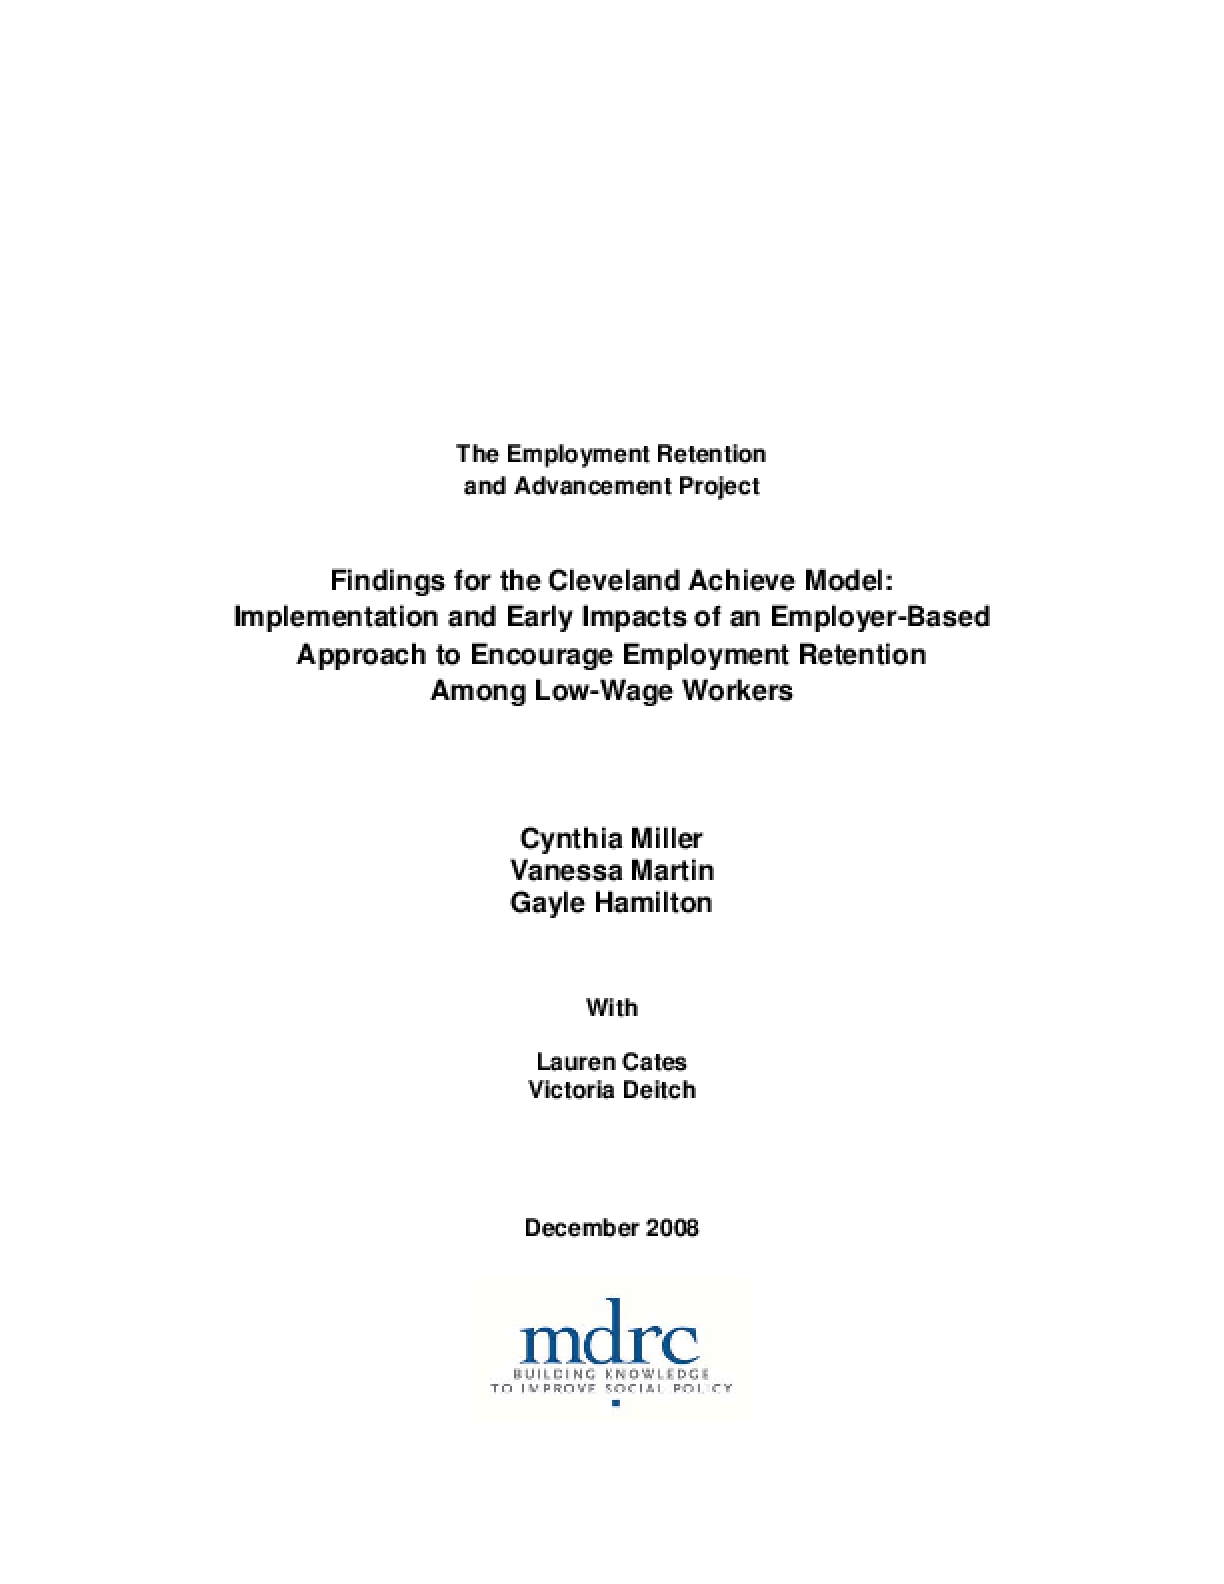 Findings for the Cleveland Achieve Model: Implementation and Early Impacts of an Employer-Based Approach to Encourage Employment Retention Among Low-Wage Workers